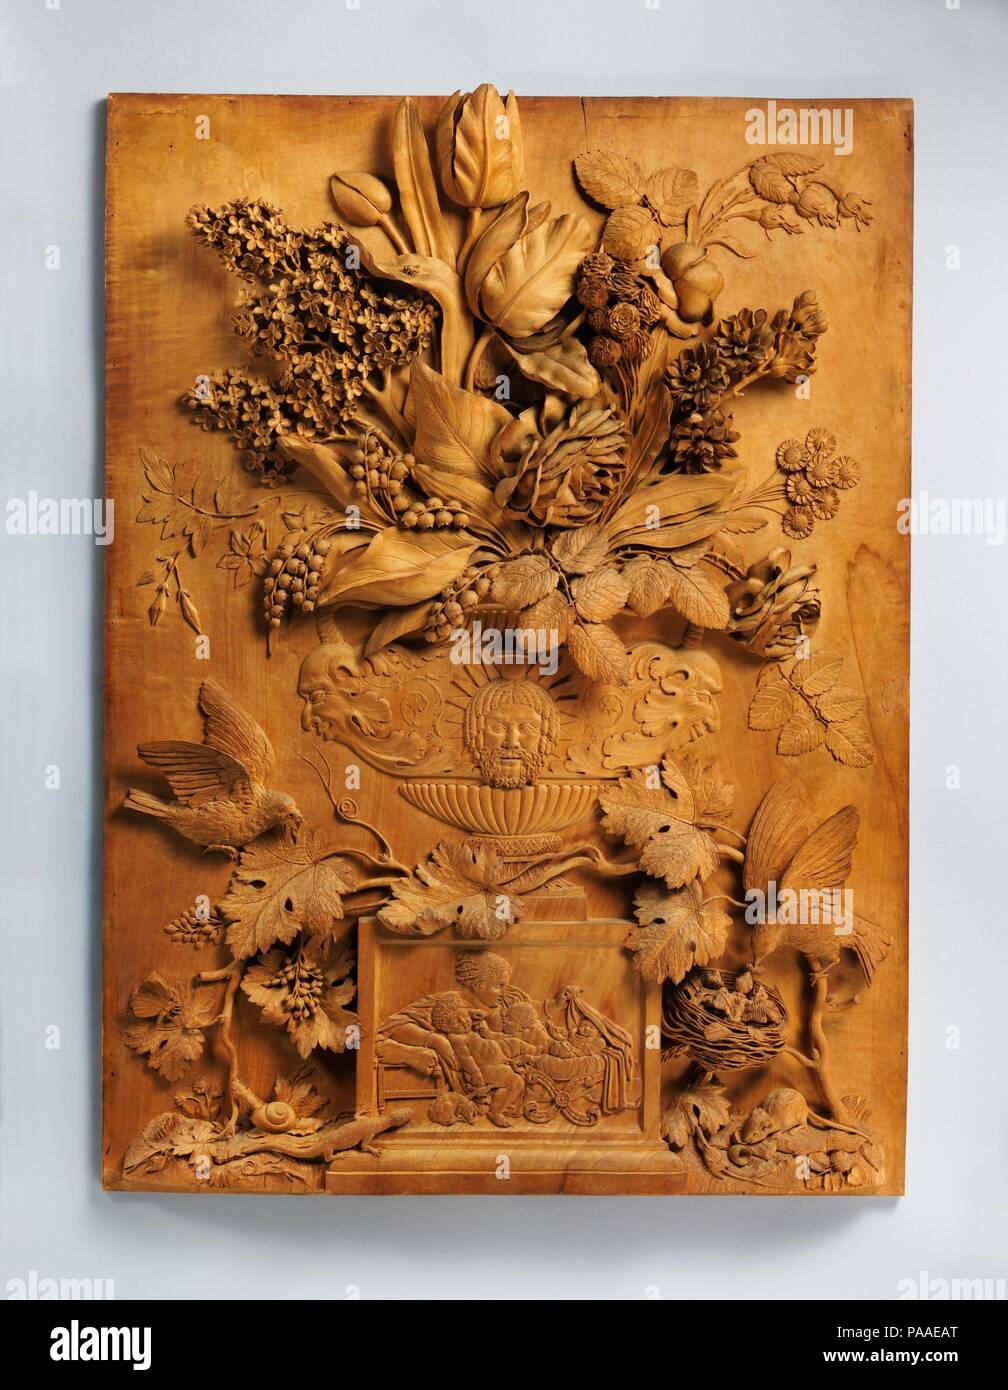 Floral still-life relief. Culture: French. Dimensions: Panel:  27 3/4 x 20 5/8 in.  (70.5 x 52.4 cm); Frame:  37 1/2 x 30 1/2 x 3 in. (95.3 x 77.5 x 7.6 cm). Maker: Aubert Henri Joseph Parent (French, Cambrai 1753-1835 Valenciennes). Date: 1784.  Carved of a single piece of soft lime wood, this high relief with its daring undercutting is an excellent example of the virtuoso work for which the French sculptor Aubert Parent was justly known. Reminiscent of Dutch seventeenth-century flower paintings, Parent's still lifes then as now drew admiration for their realism, delicacy, and the remarkable  - Stock Image